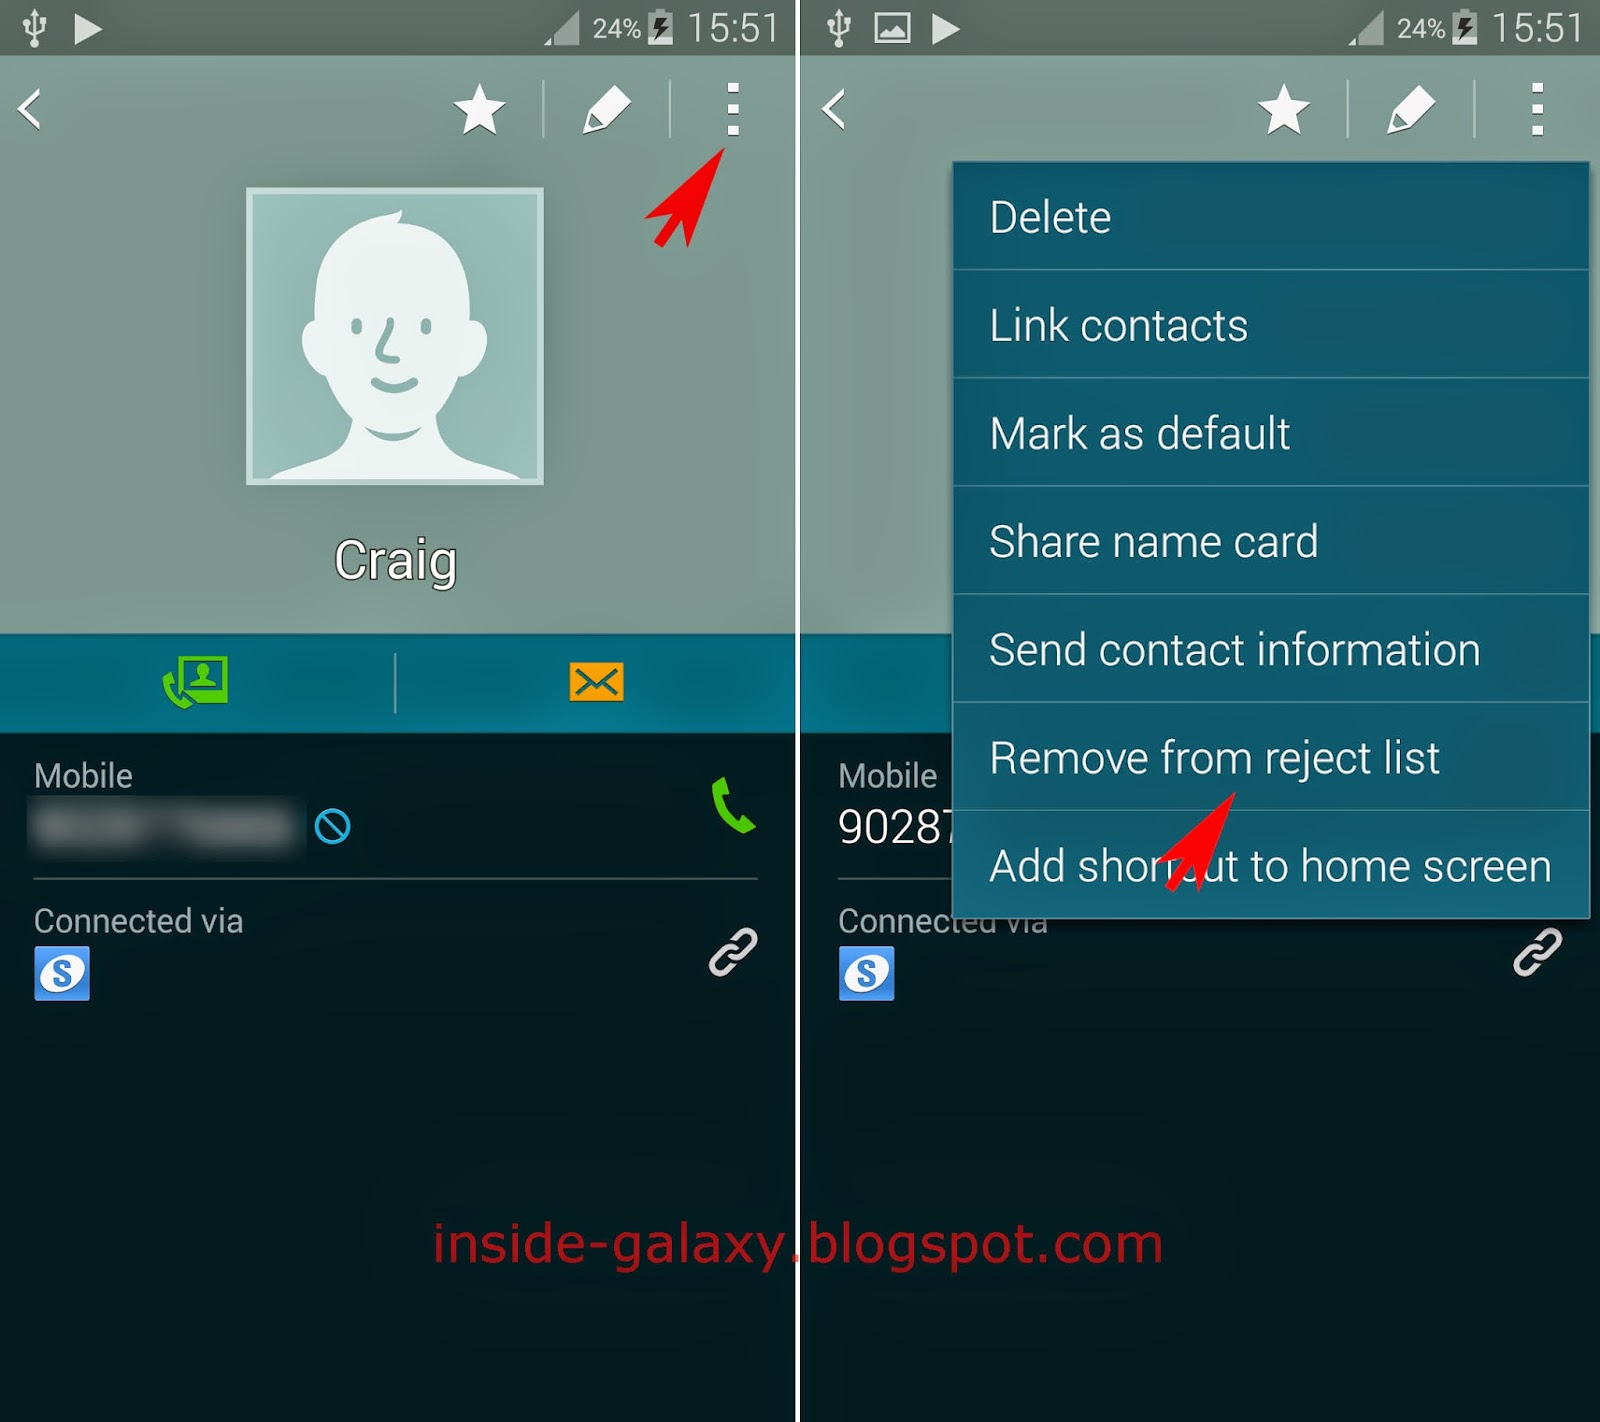 Samsung Galaxy S5 How to Add or Remove Contact From the Reject List